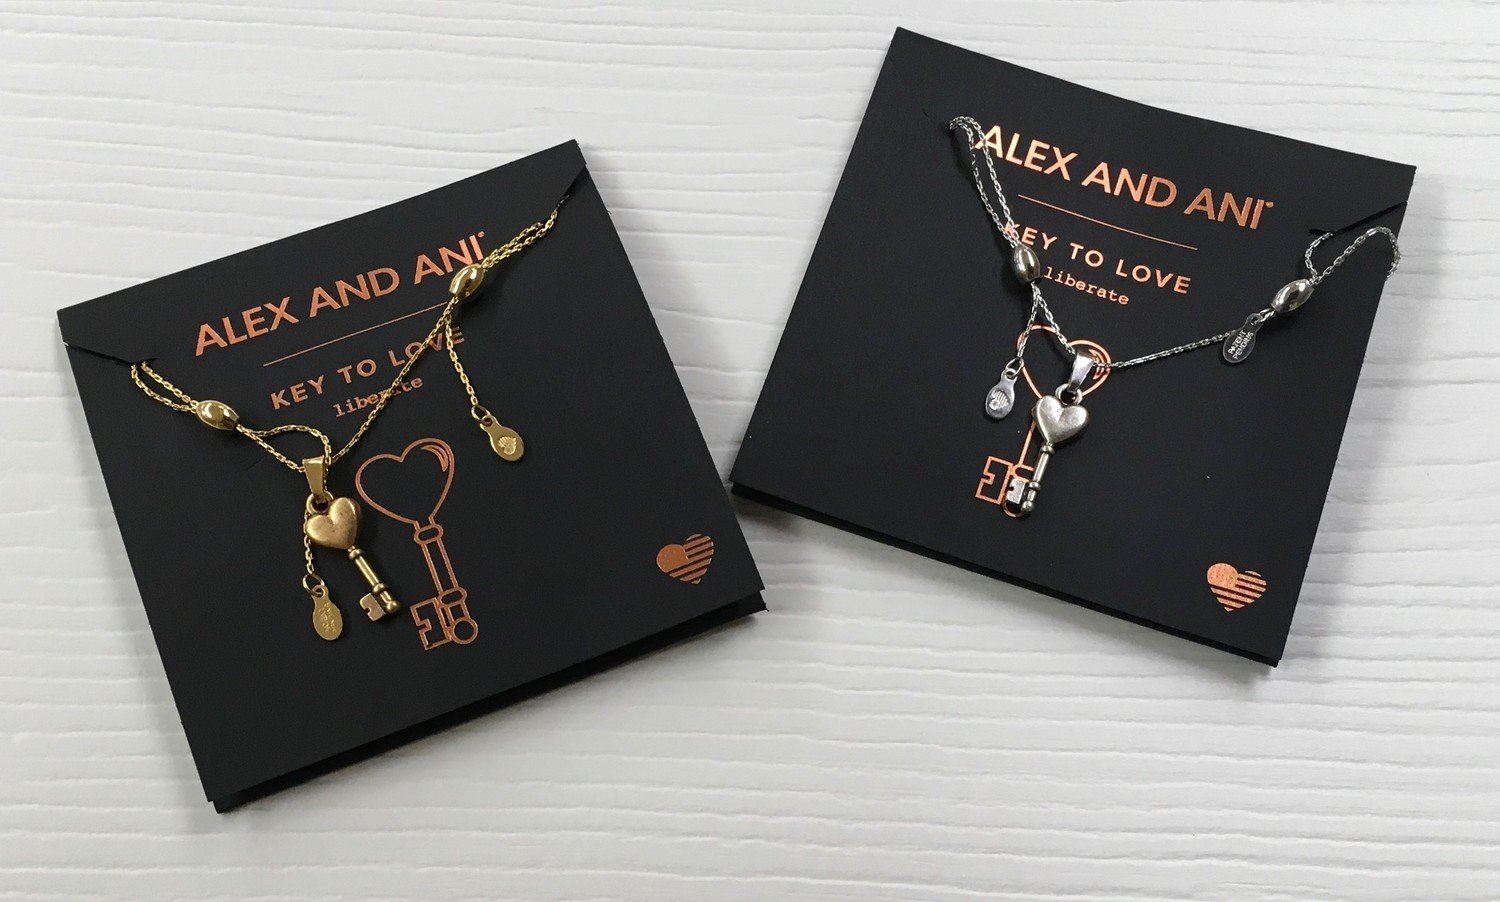 Key to Love Alex and Ani Necklace.  Expandable